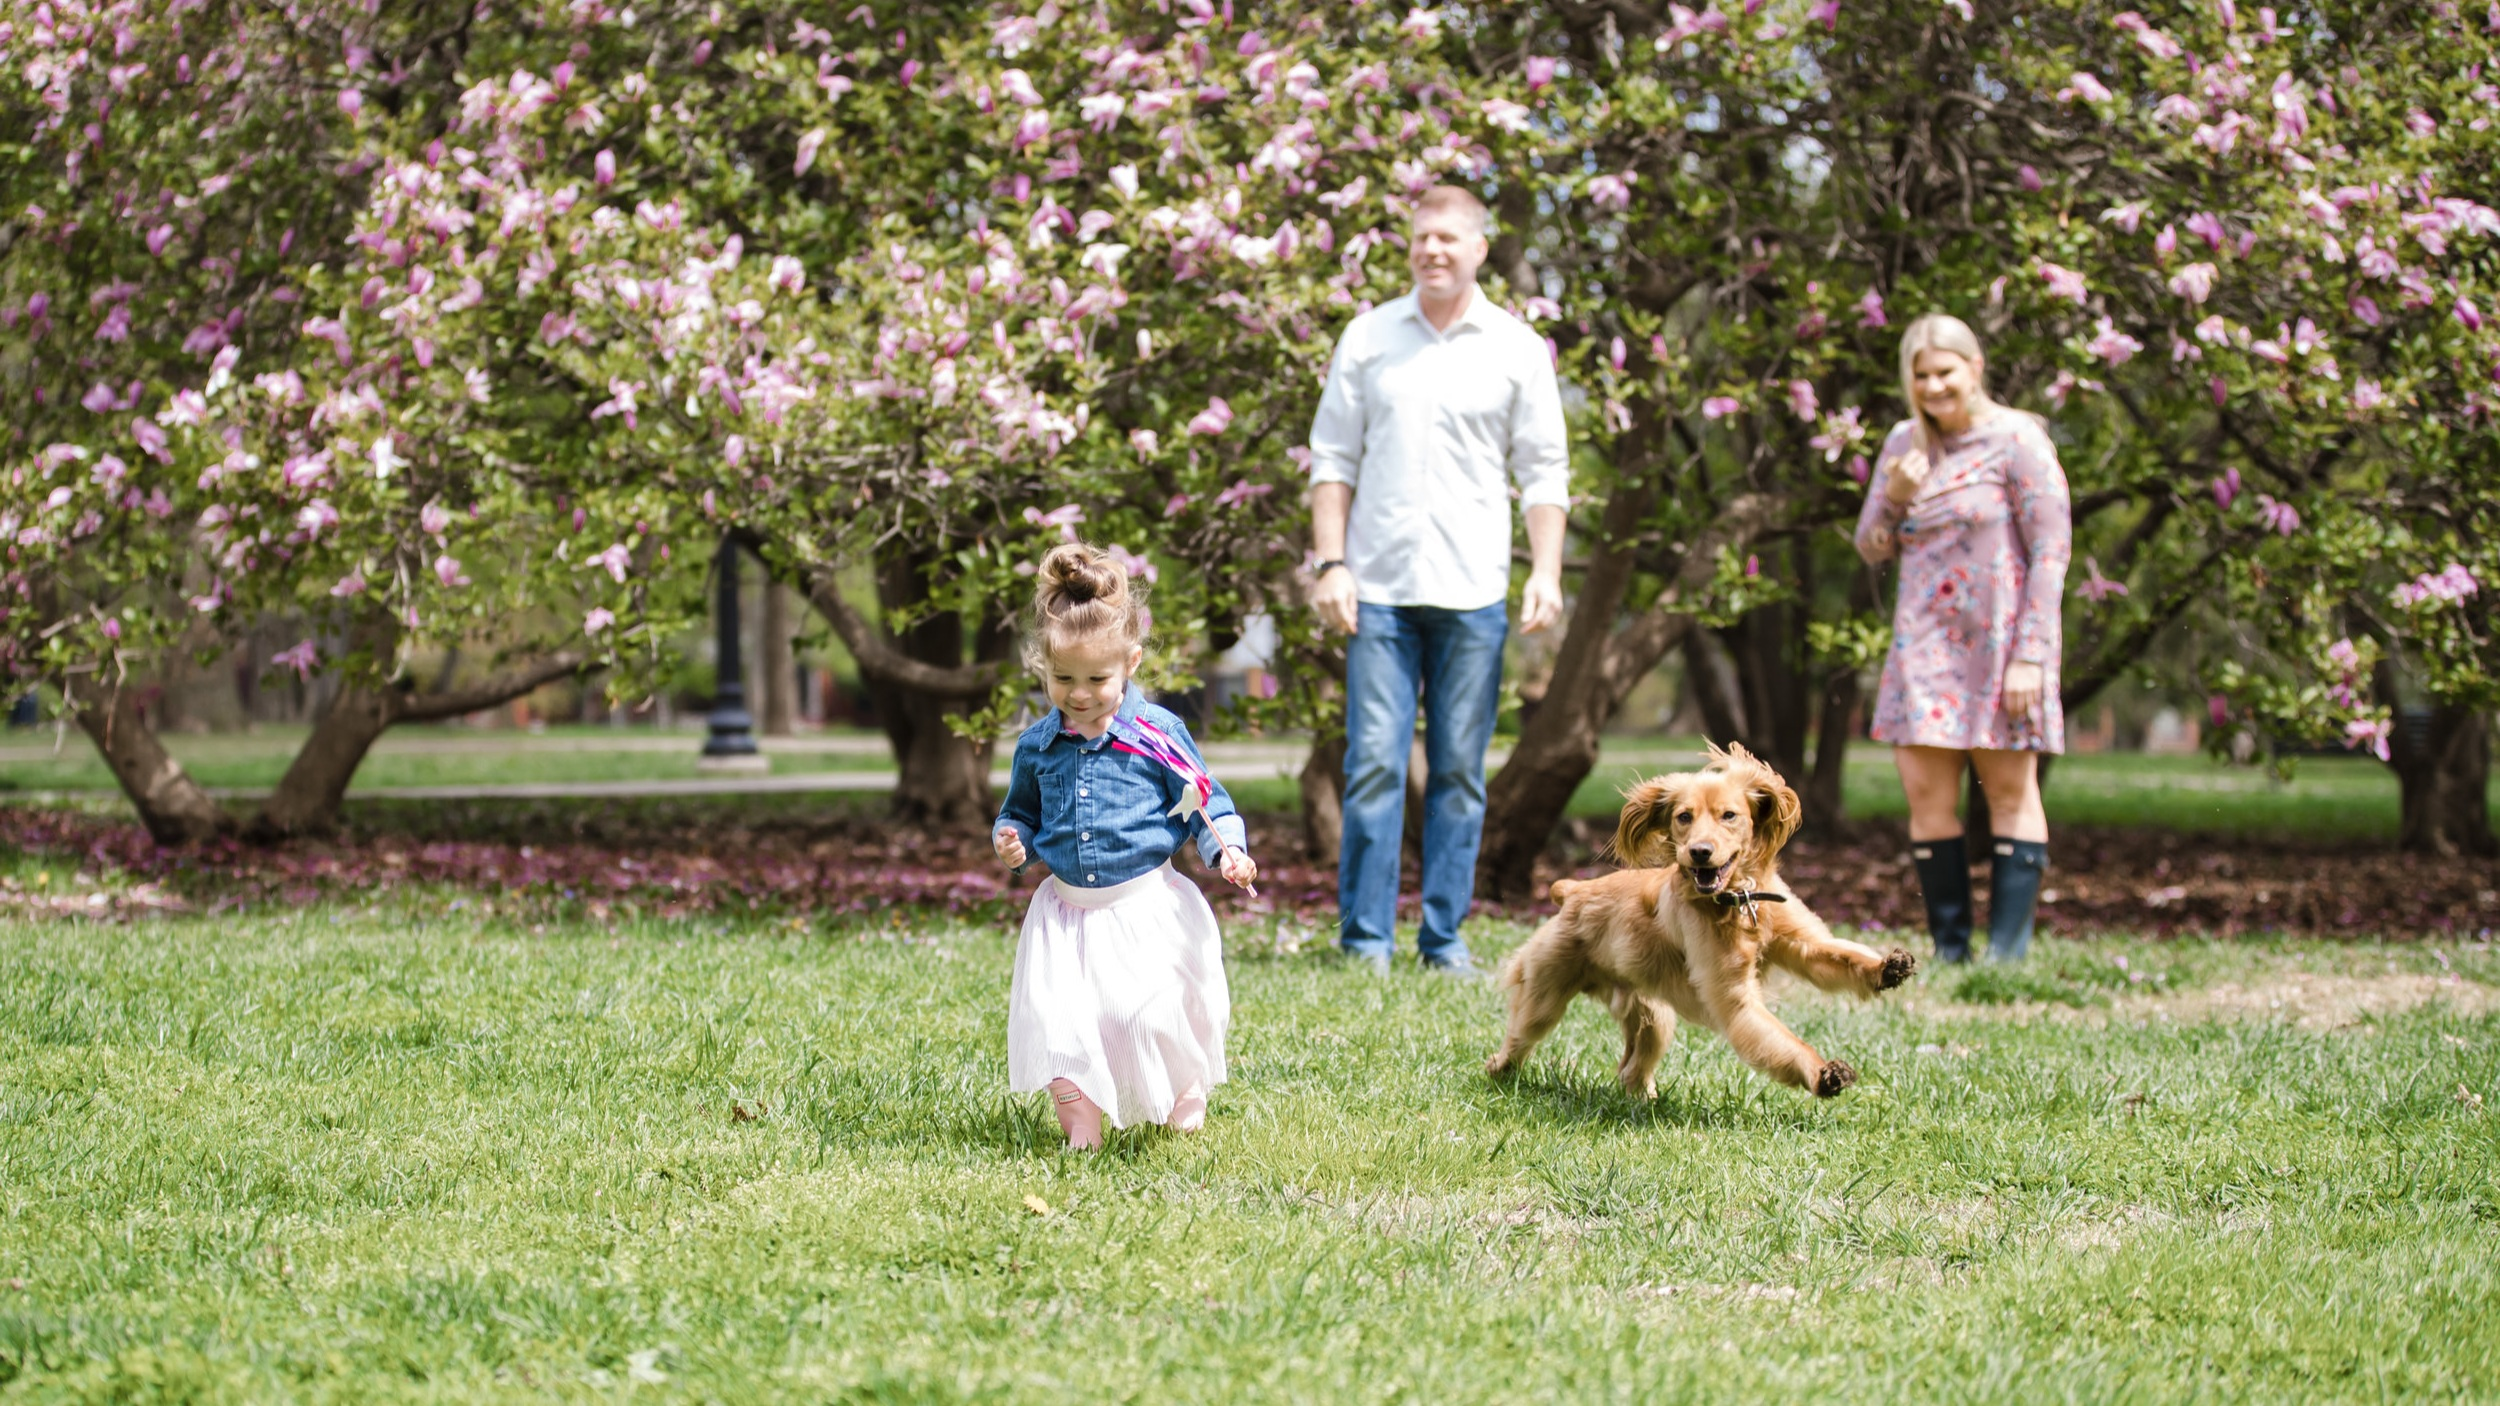 Relax with (furry) friends. - Speaking of friends, we've got your furry pals covered too. Our dog run offers plenty of room for a game of fetch, and Fido will be glad to hear that a dog park is located just across the street.Photo courtesy of Kimberly Potterf Photography